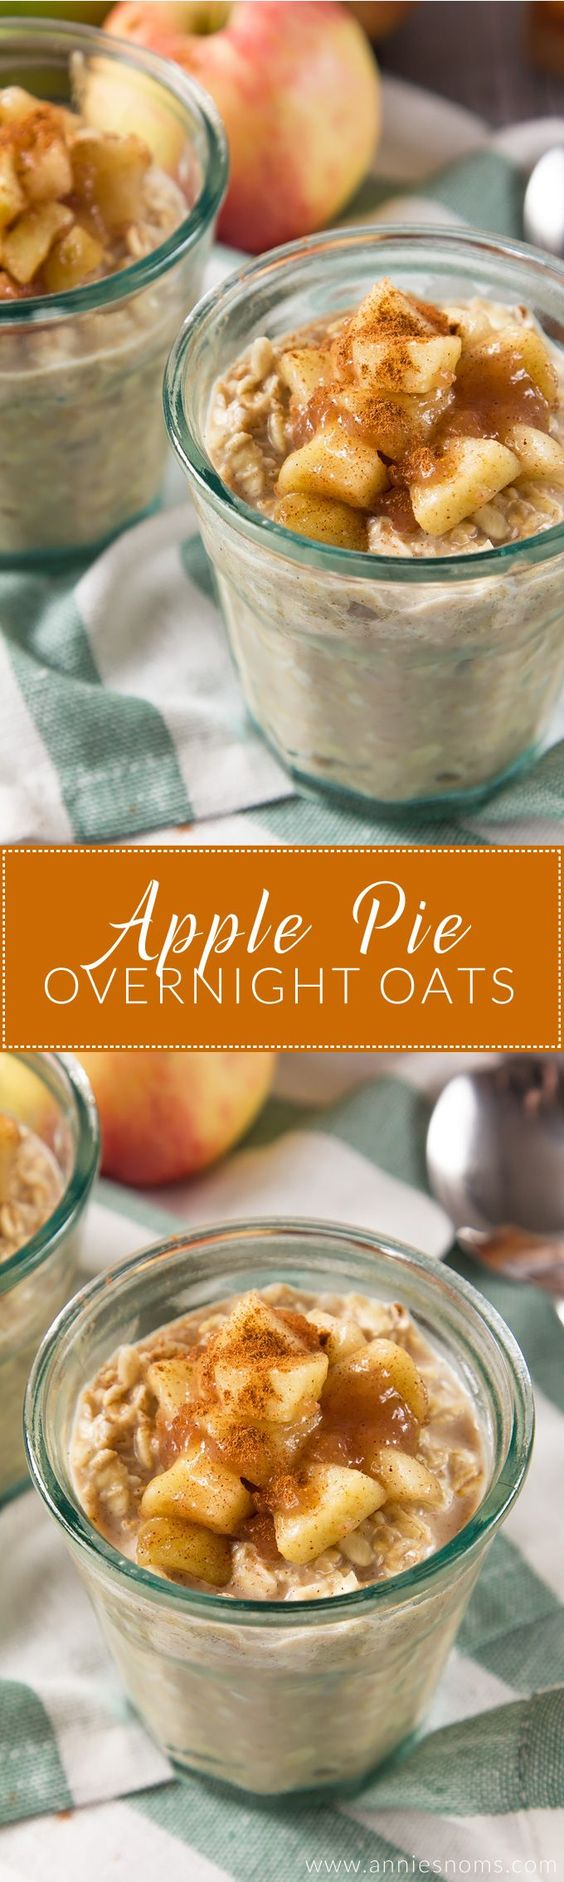 pies apple pies apple pie fillings pie fillings pies apples spices ...